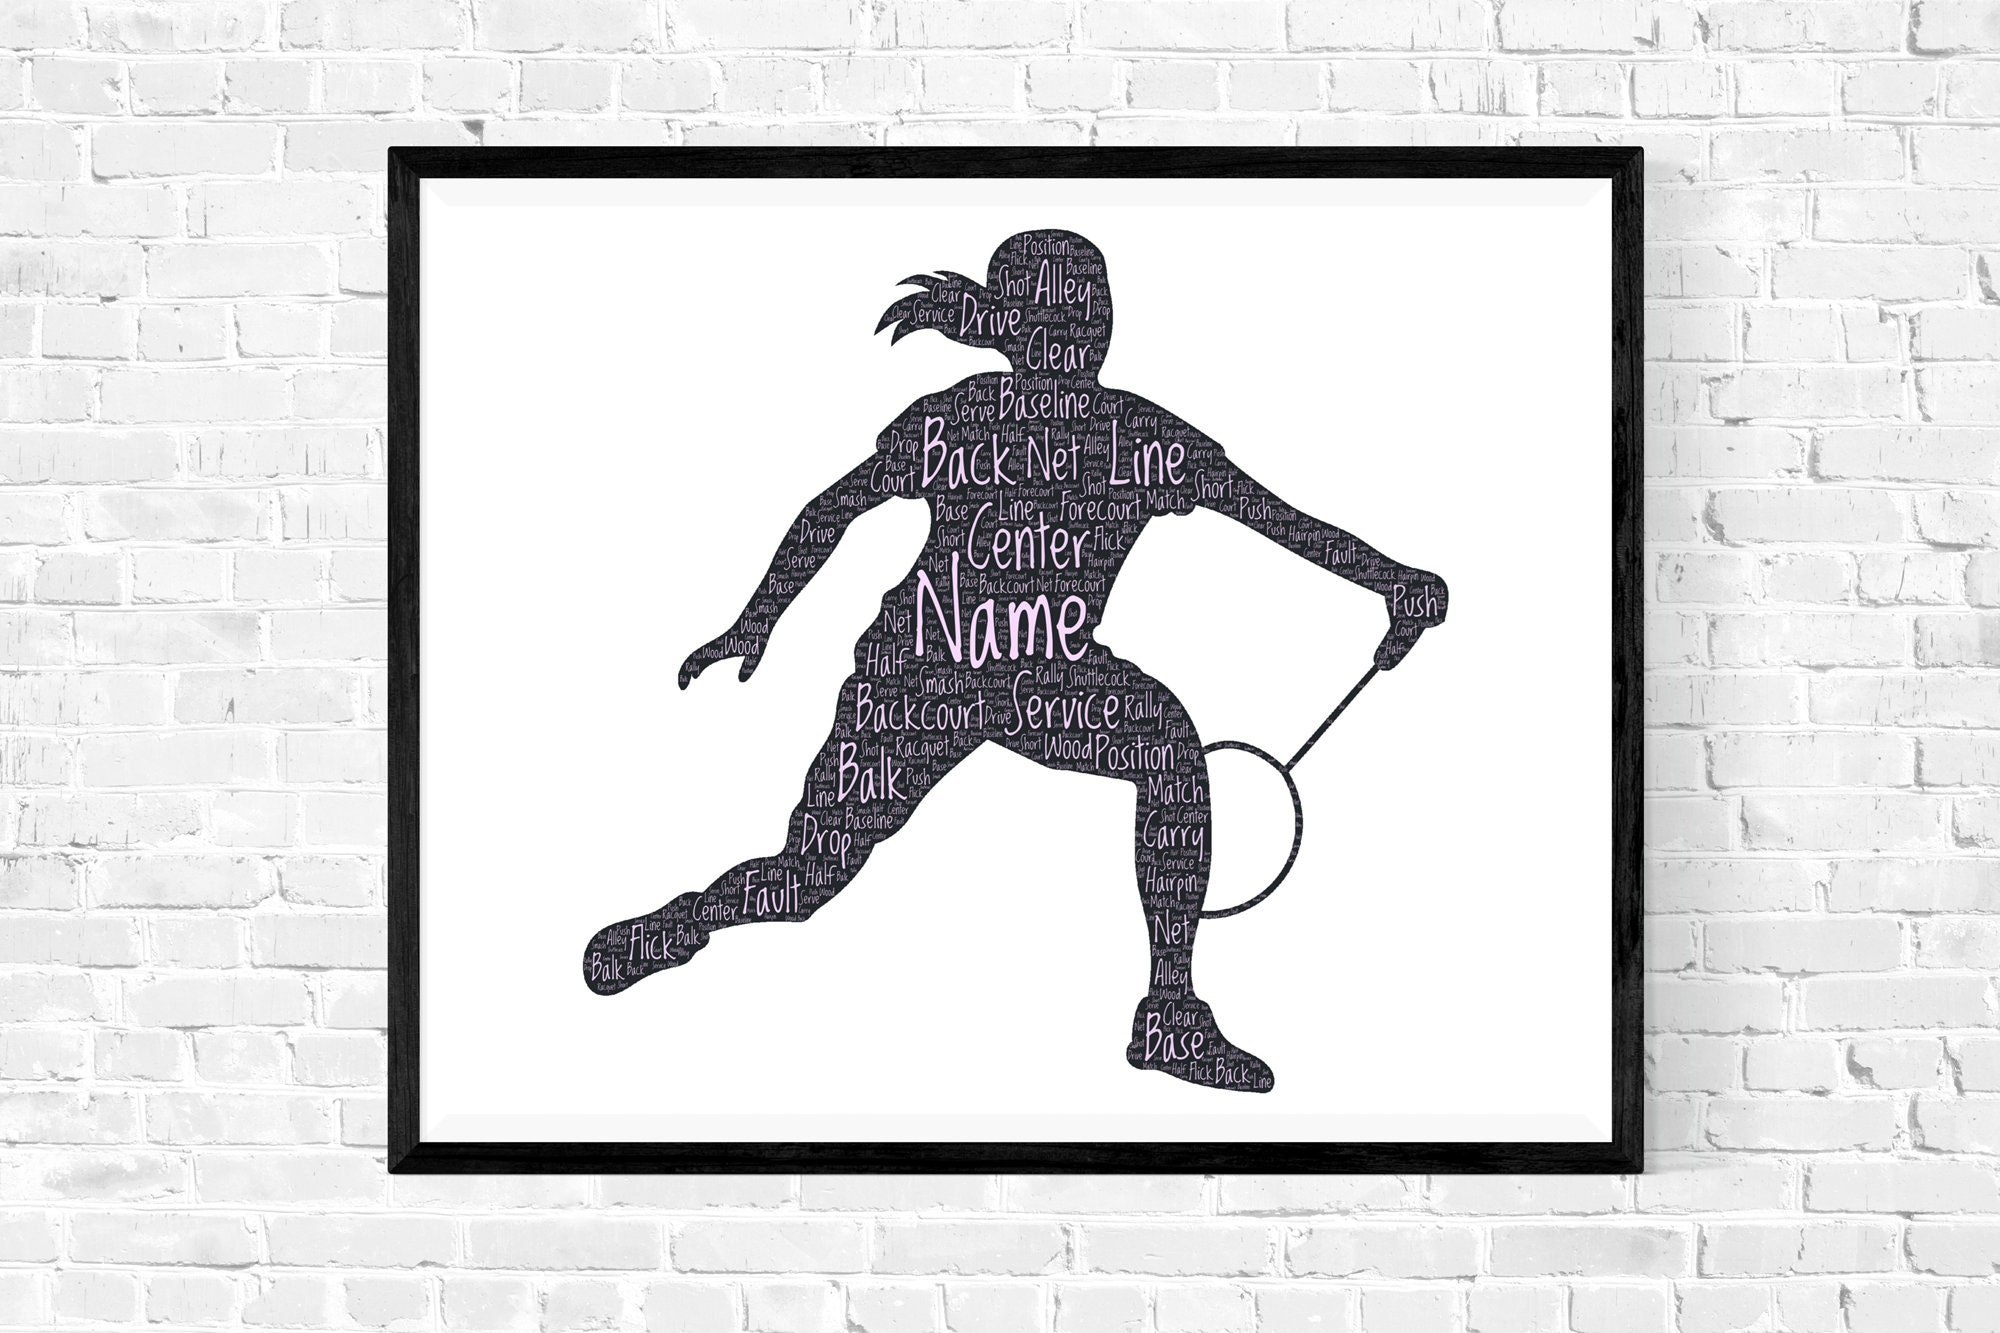 Badminton Personalized Wall Art - Female Badmintion Gift - Girl Word Cloud Typography - Gifts for Daughter Mother Sister Wife Girlfriend - Personalized